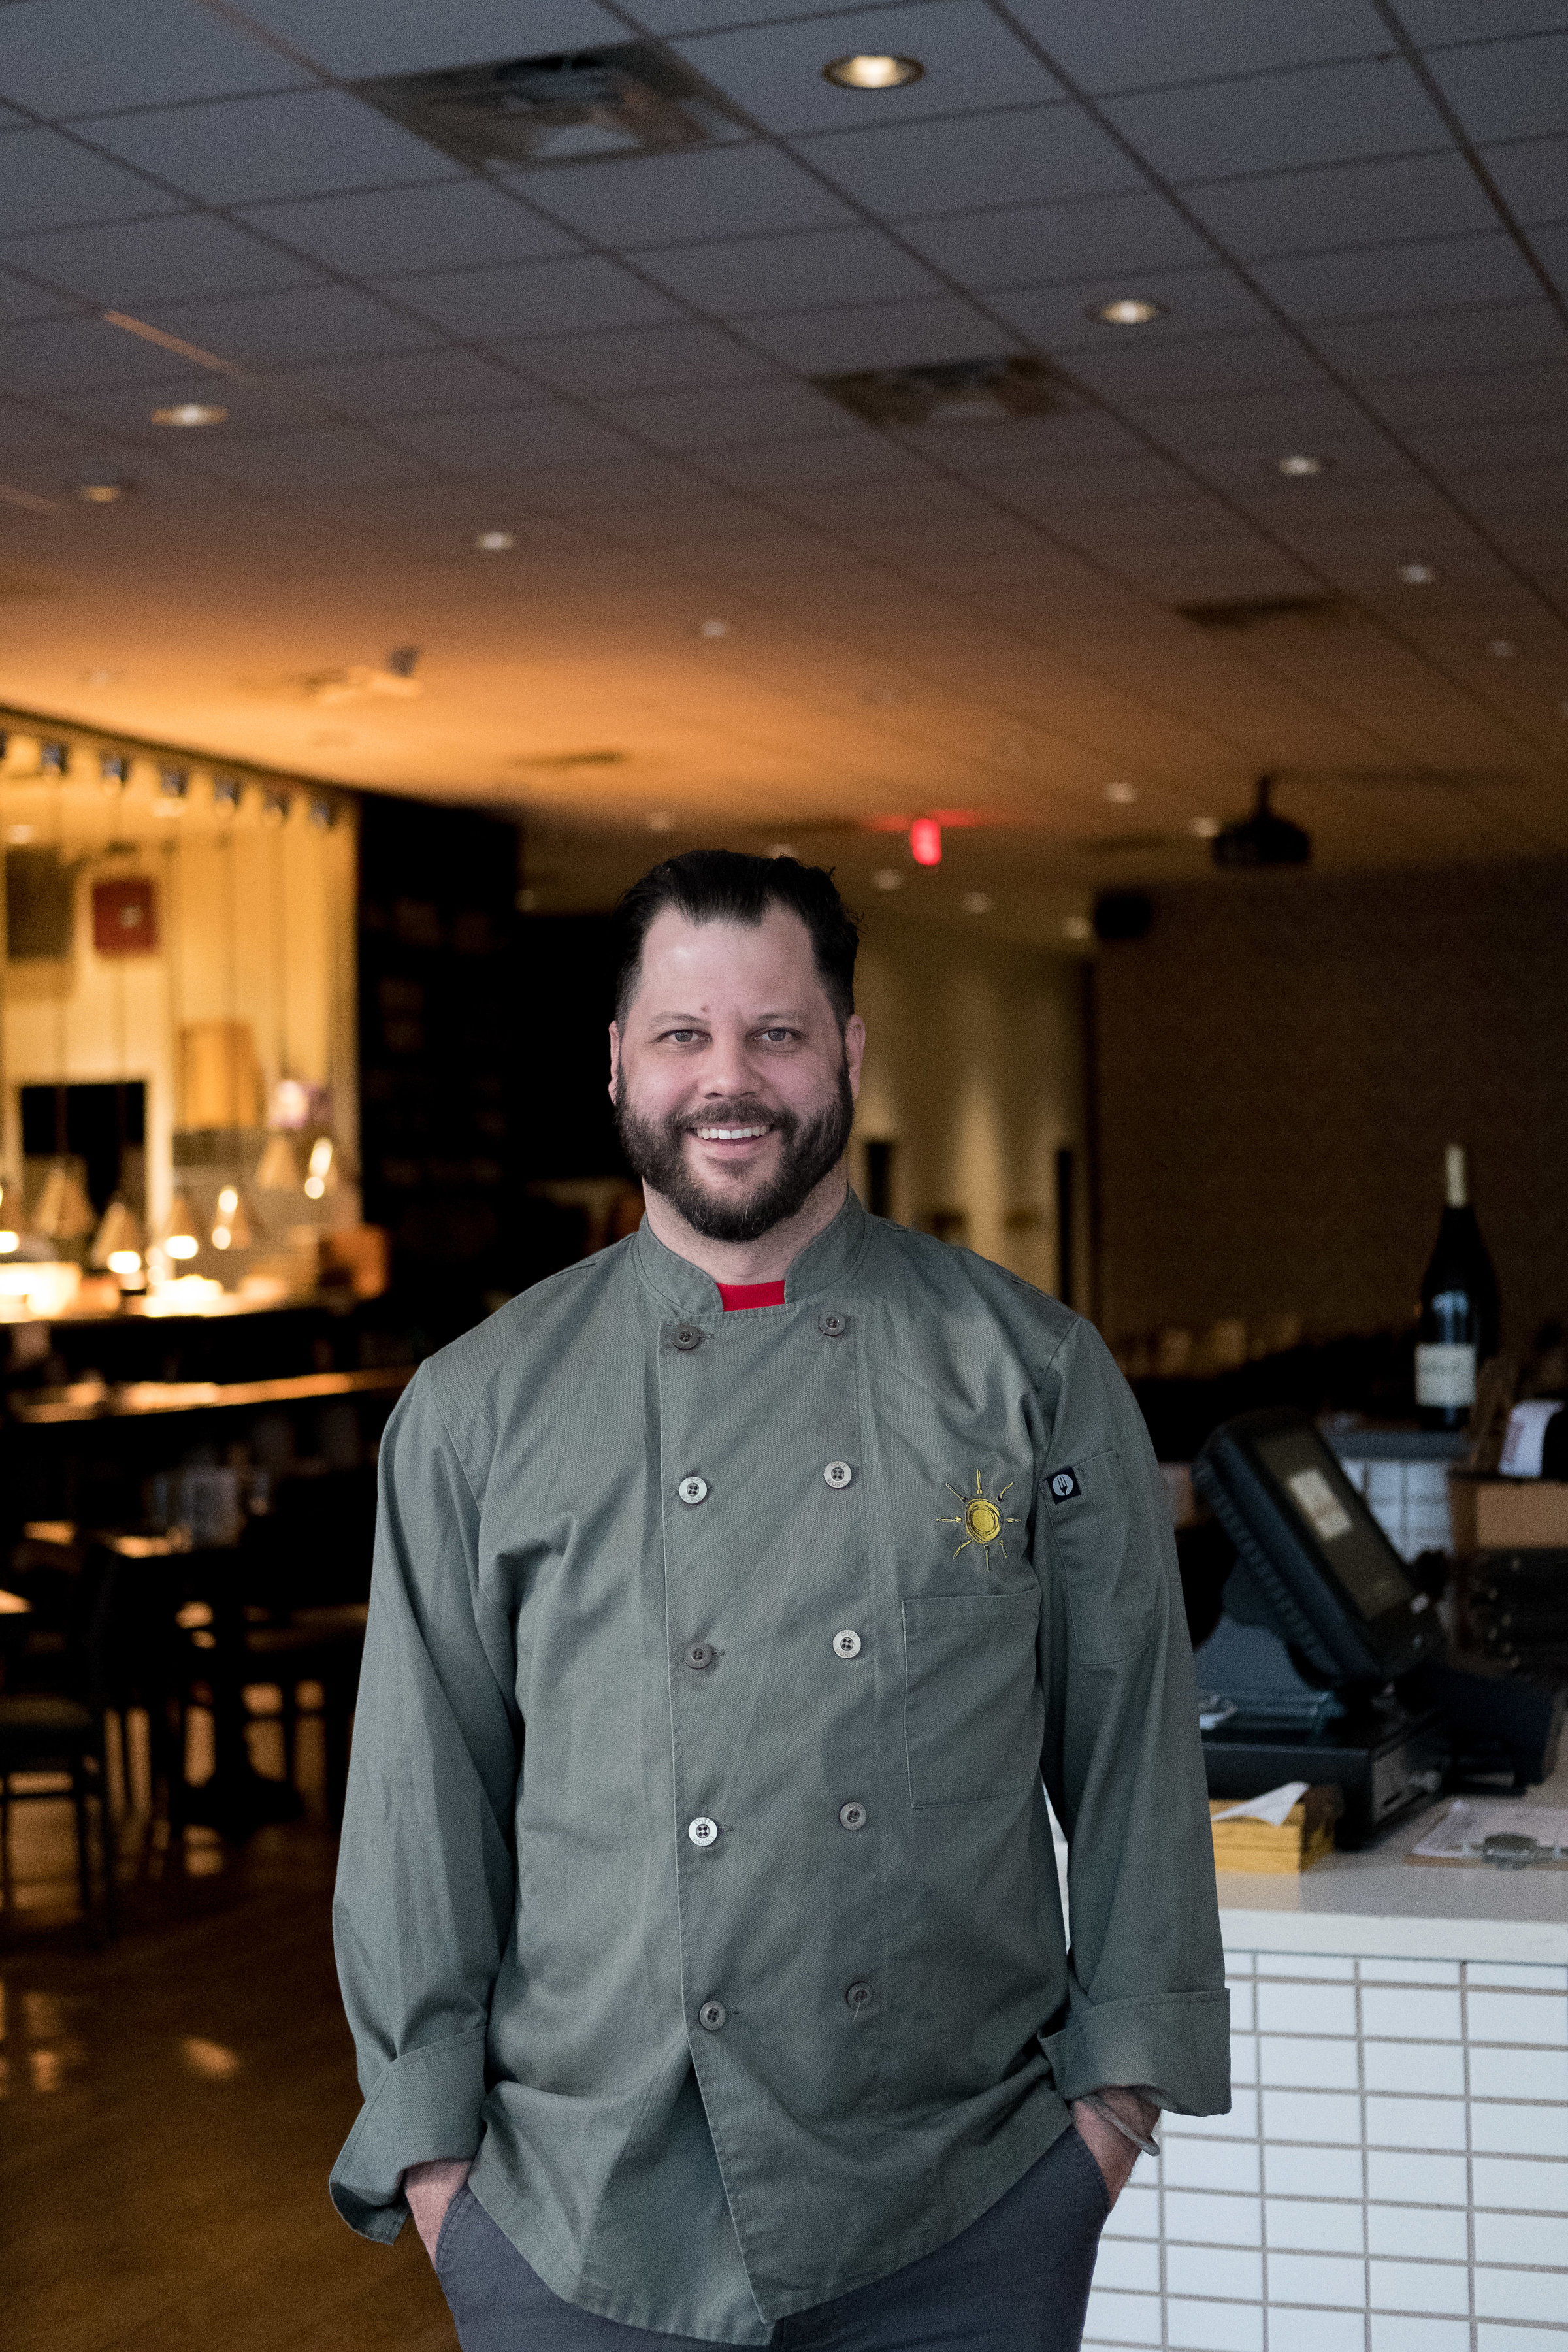 Chad Houser, Founder/CEO/Chef at Café Momentum.